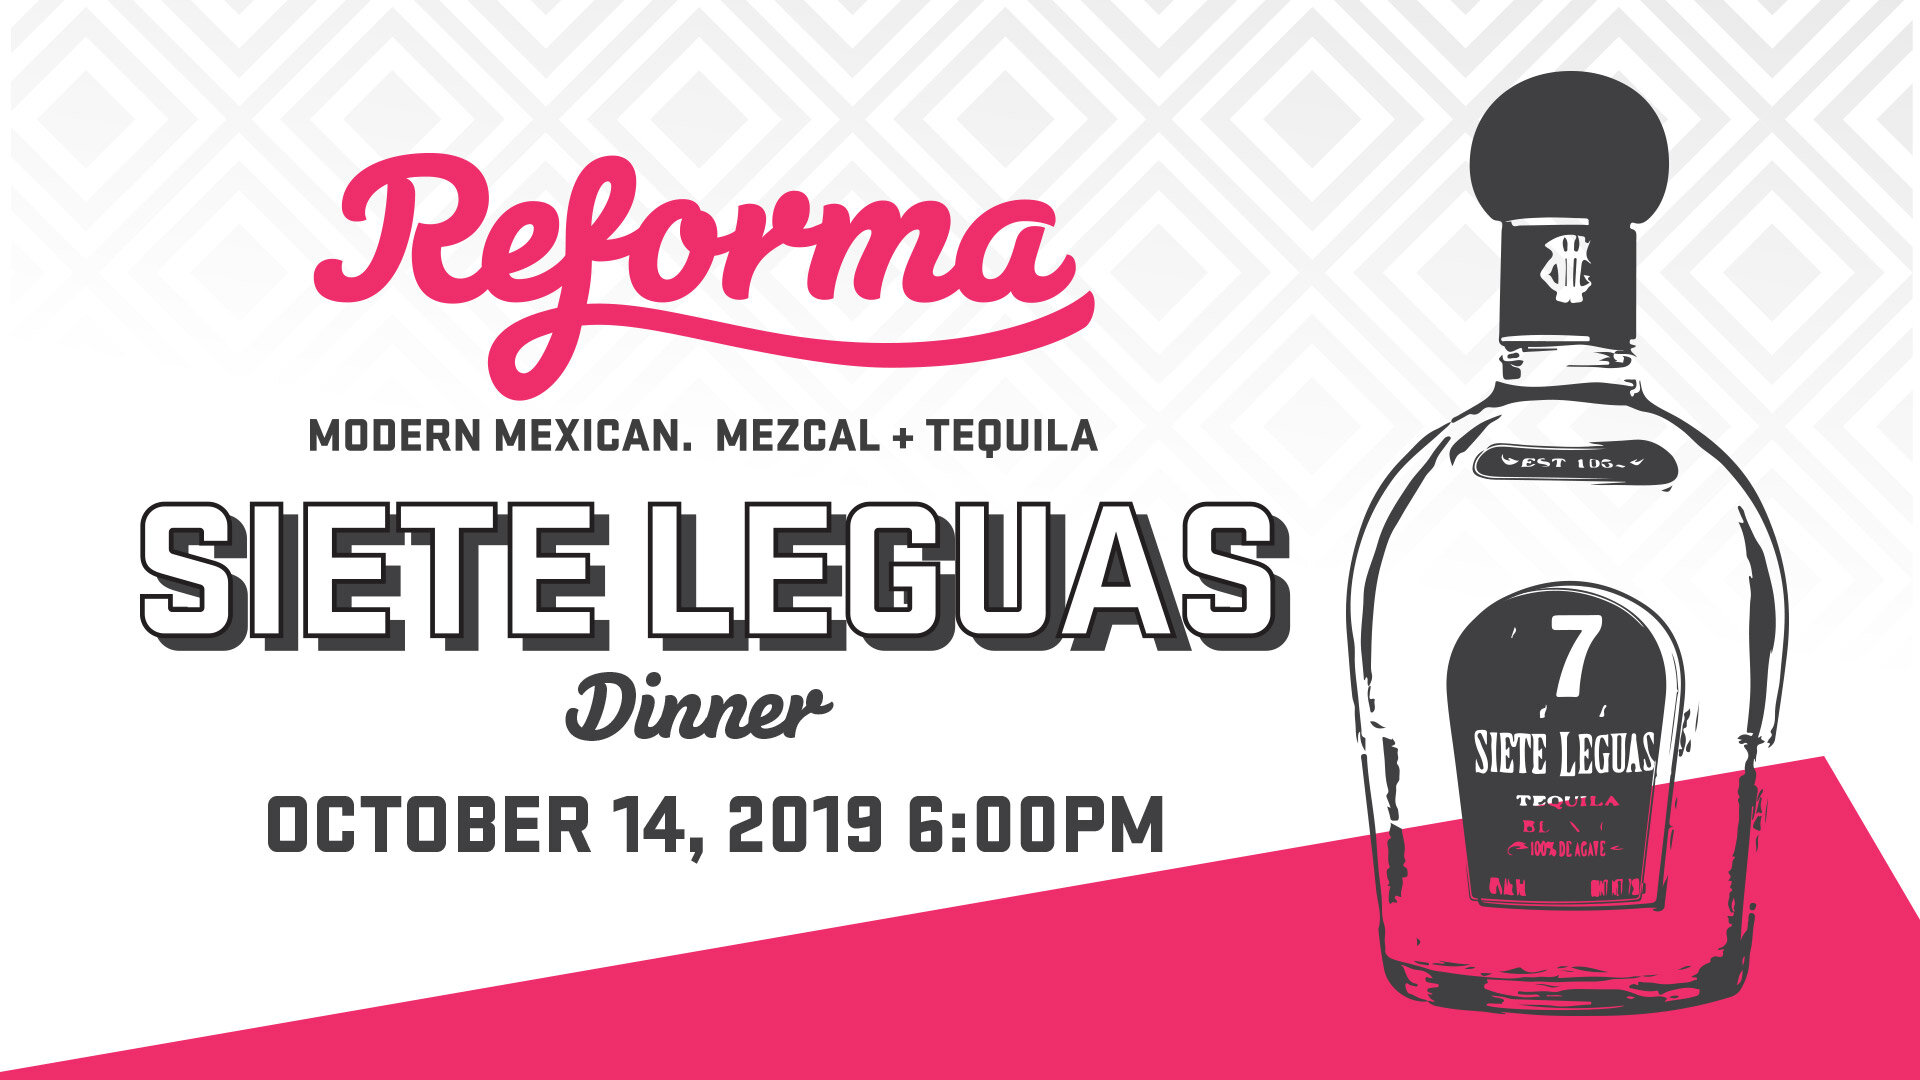 Reforma-SieteLeguas-Dinner-2019-FB-Event.jpg